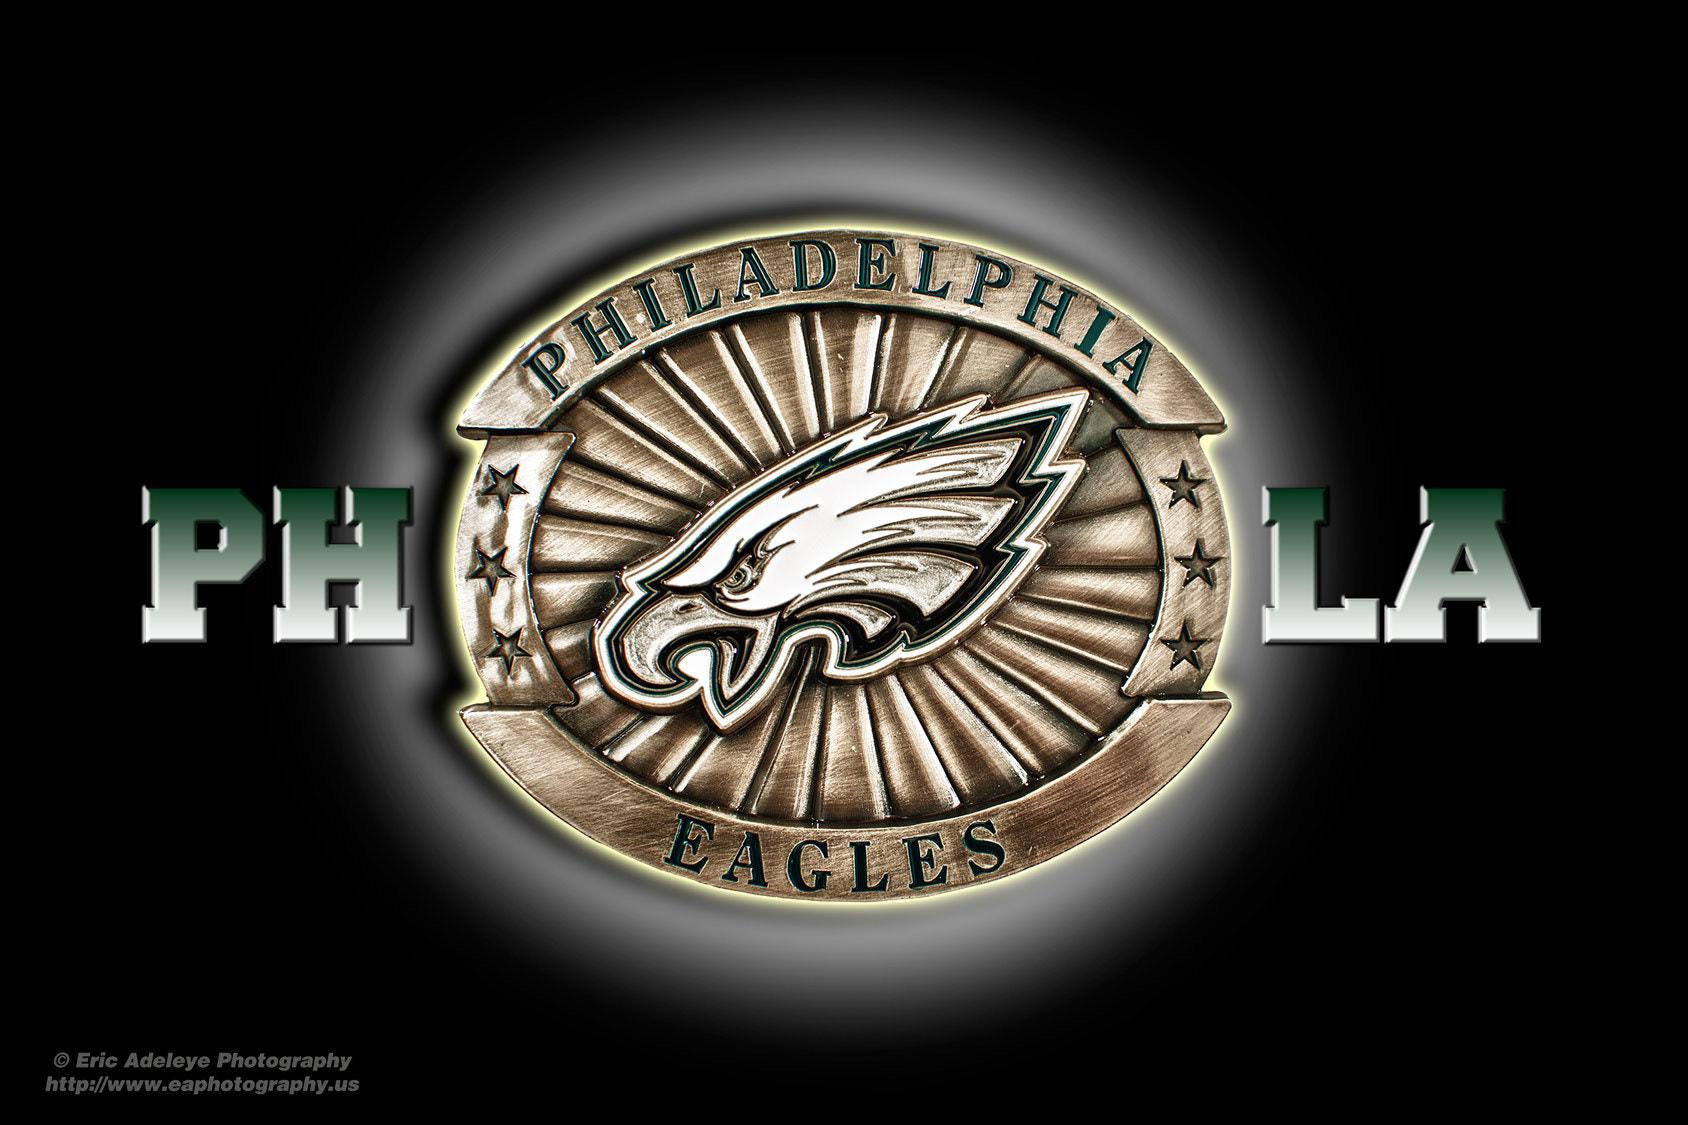 Photograph Project 365: 313/365 - Philadelphia Eagles by Eric H. Adeleye on 500px